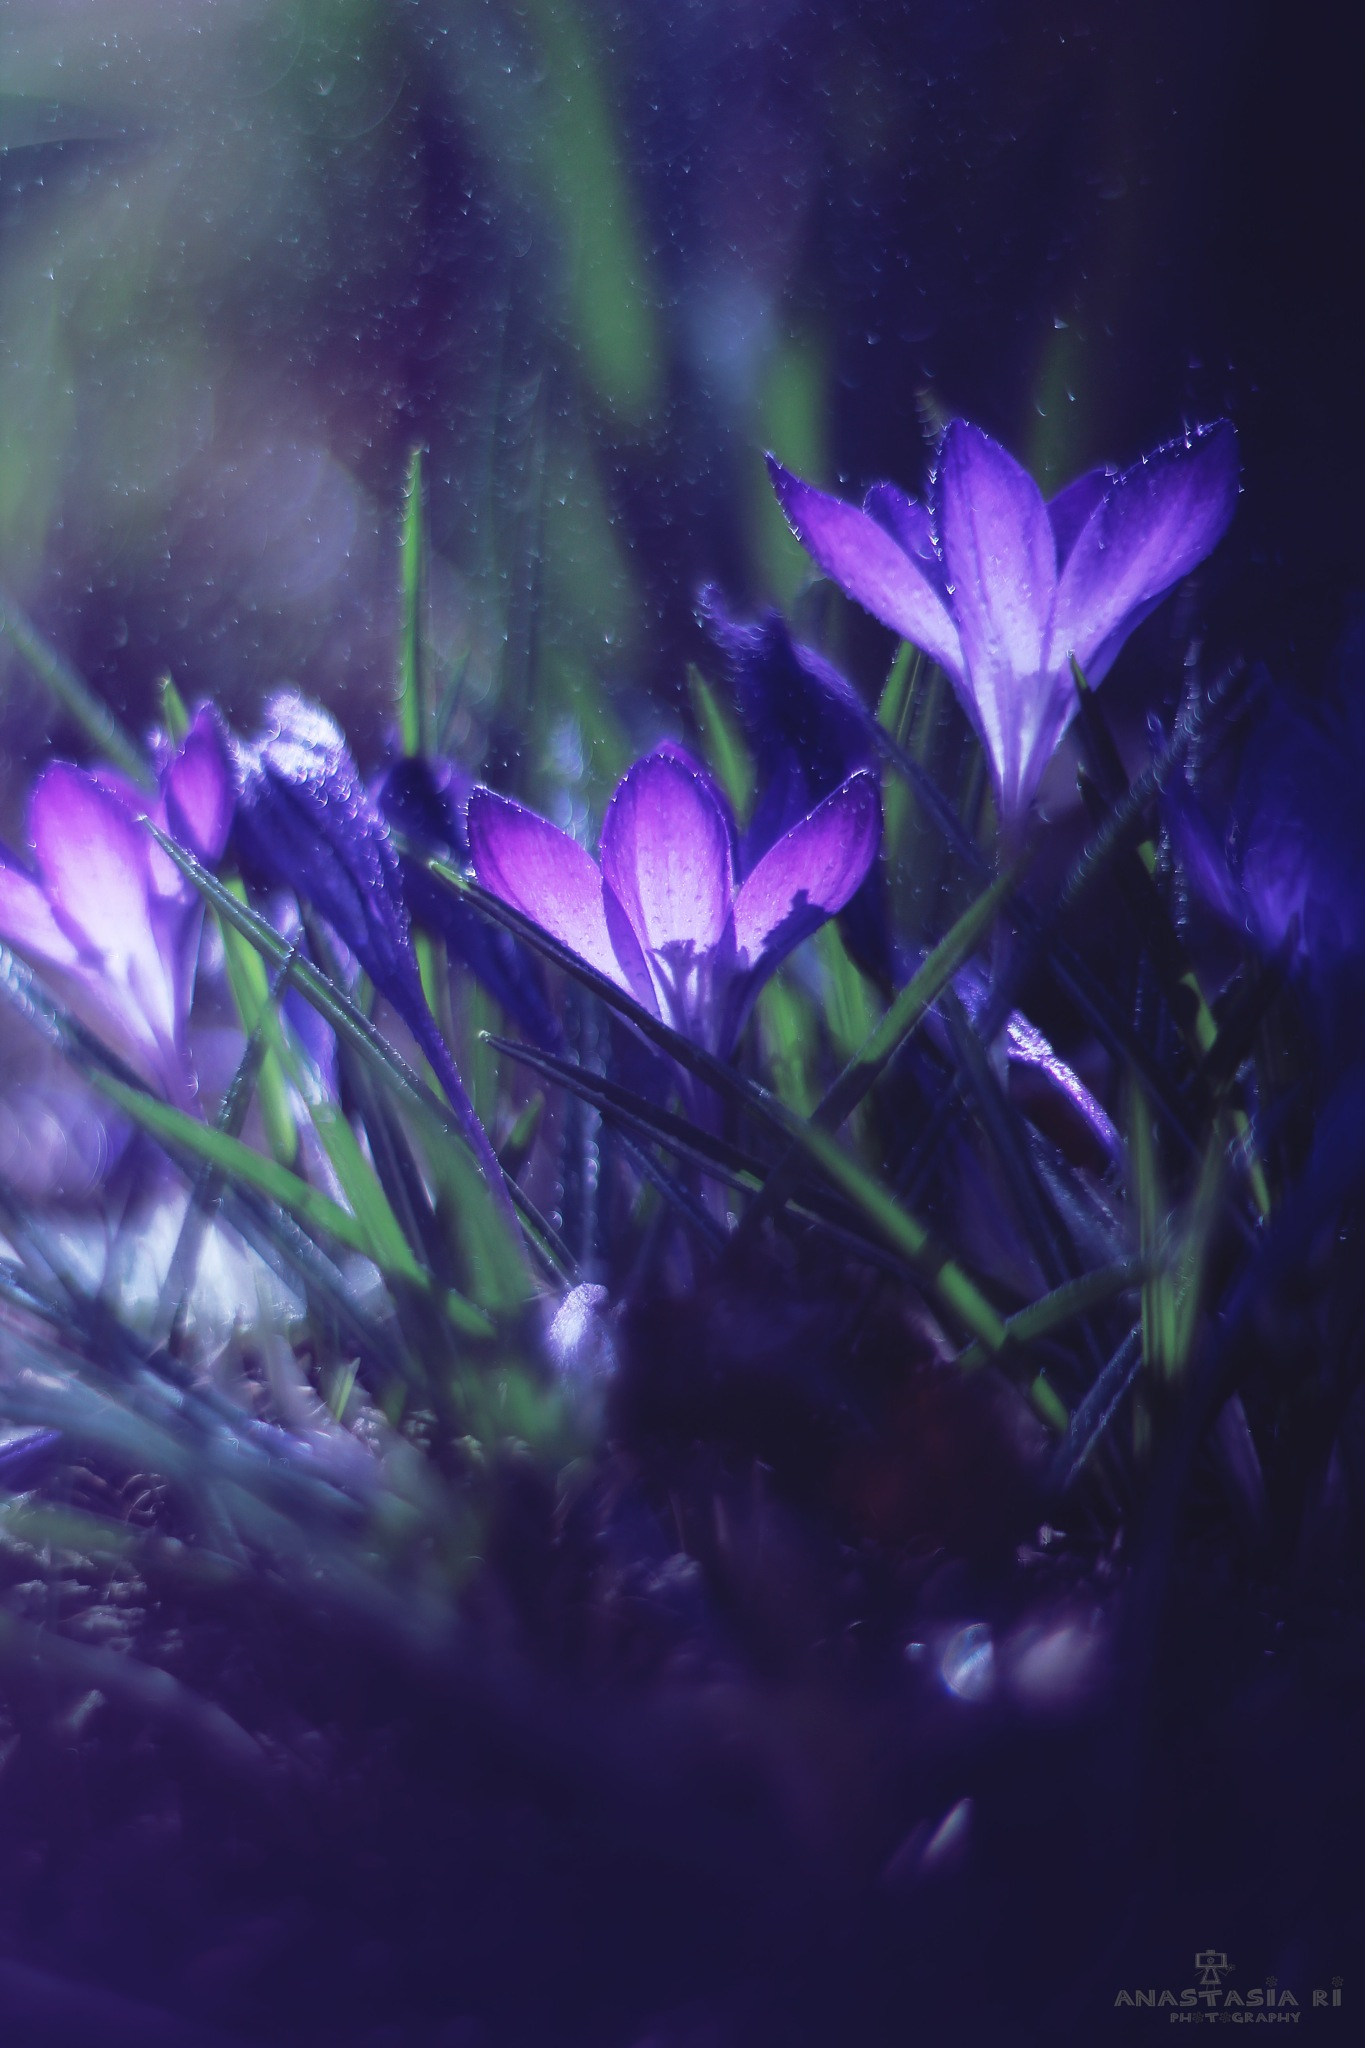 Embrace the crocus by Anastasia